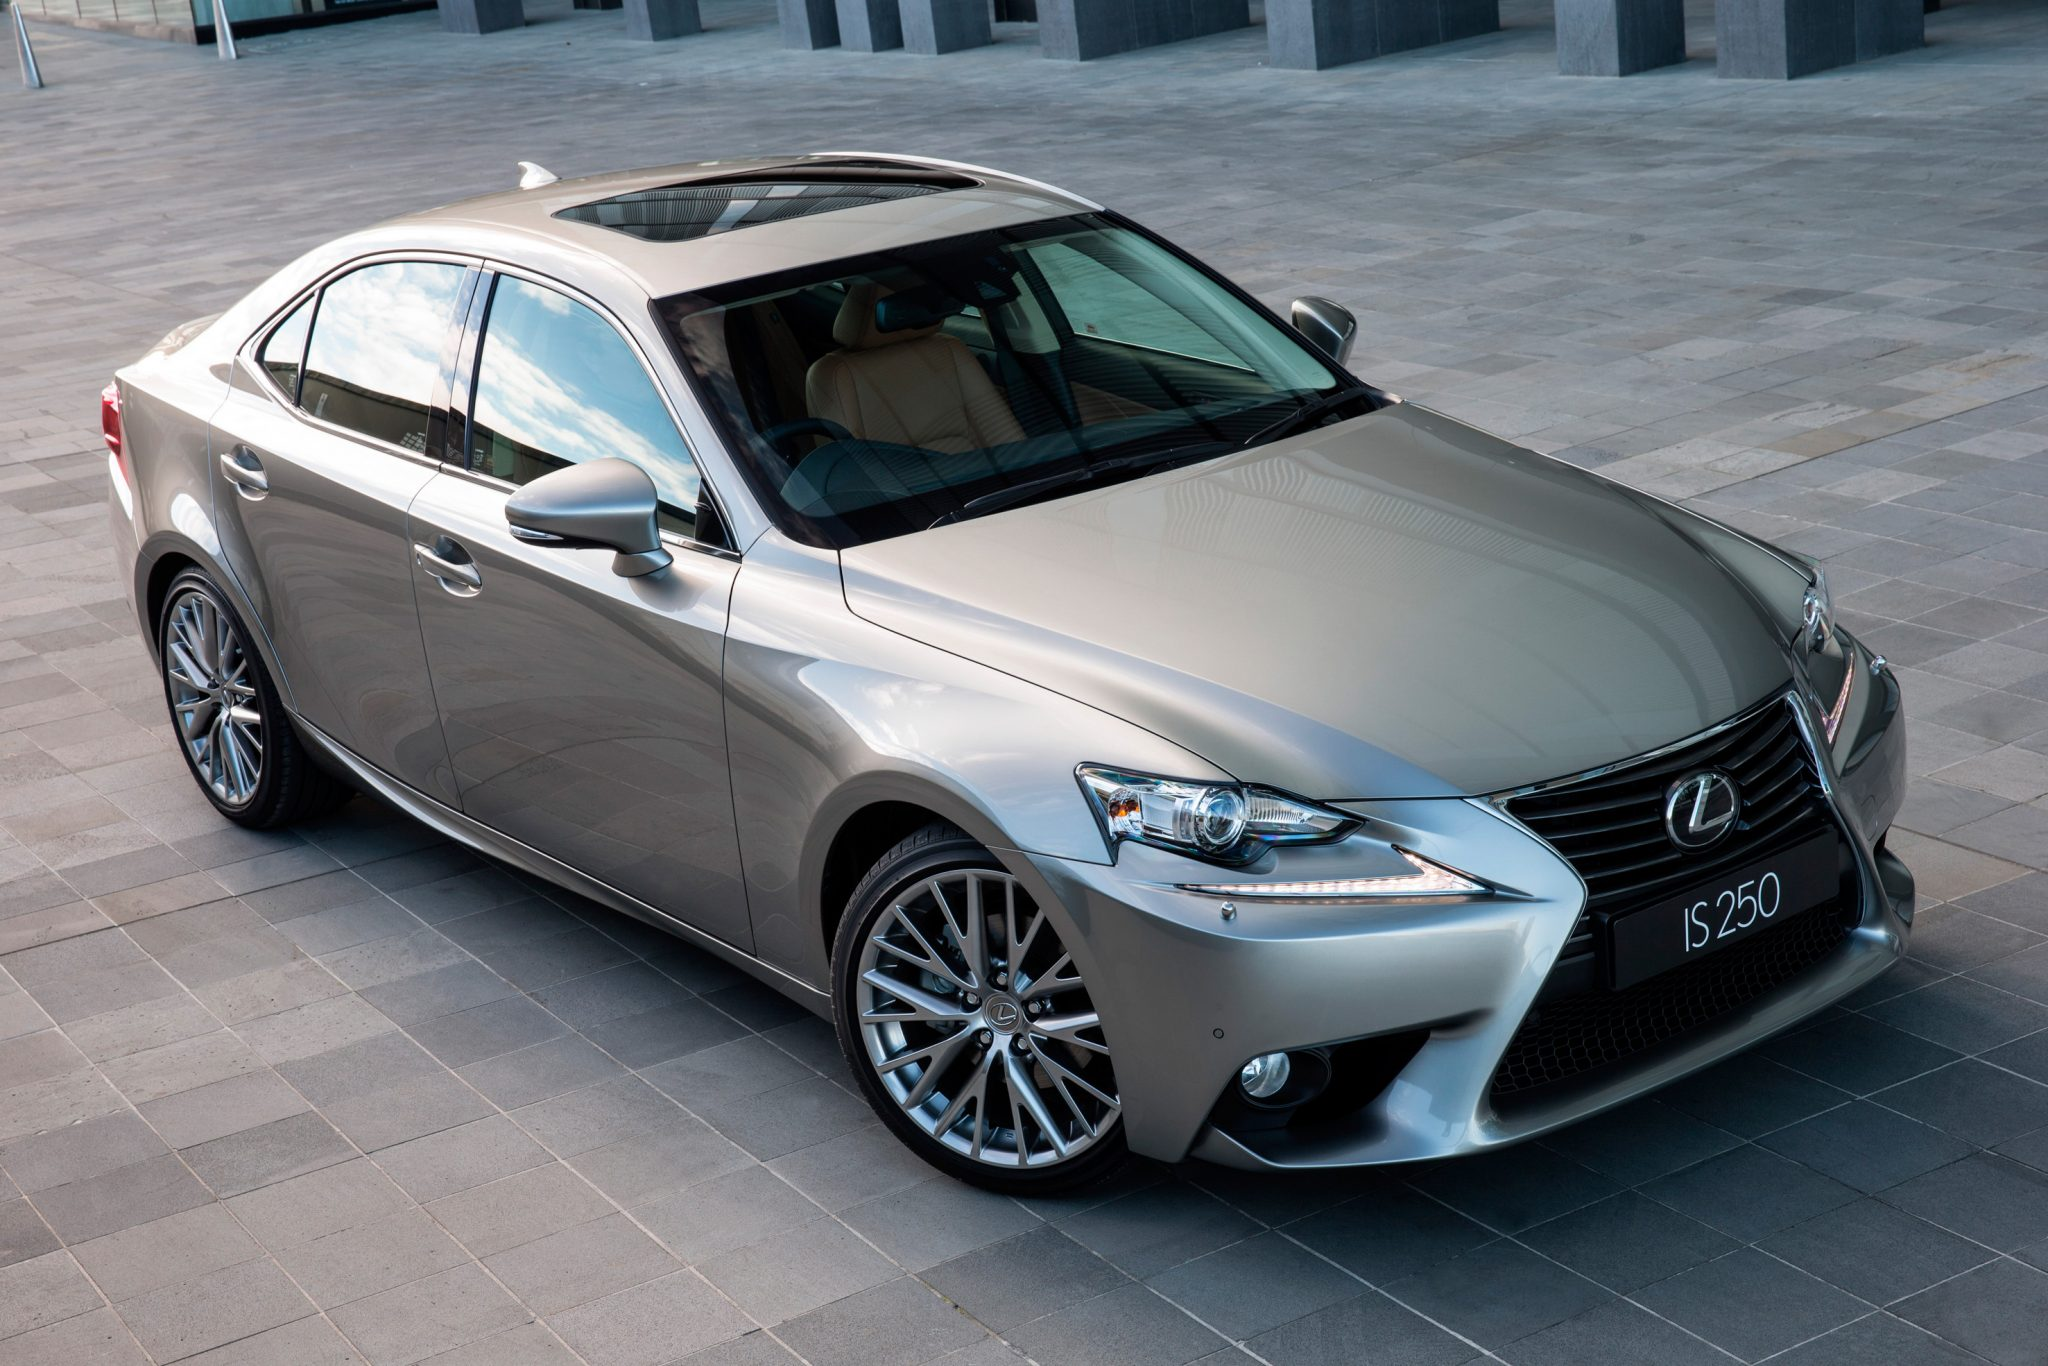 Lexus Cars News 2013 Is Launched